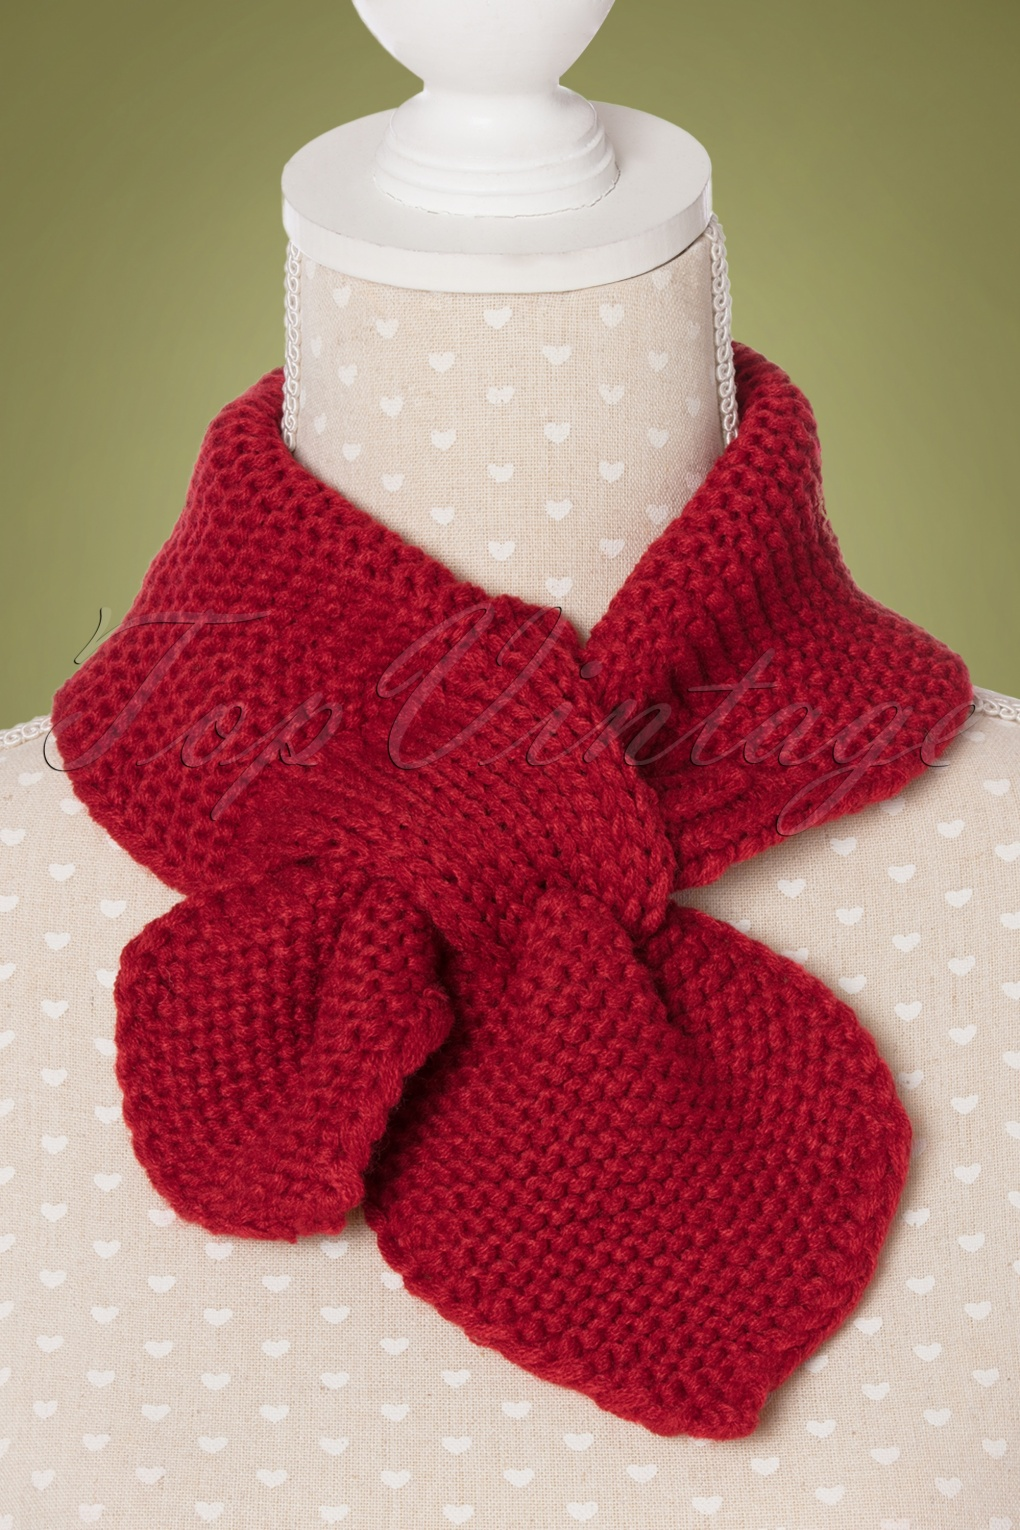 Vintage Scarf Styles -1920s to 1960s 50s Fru Fru Knitted Scarf in Red £10.46 AT vintagedancer.com